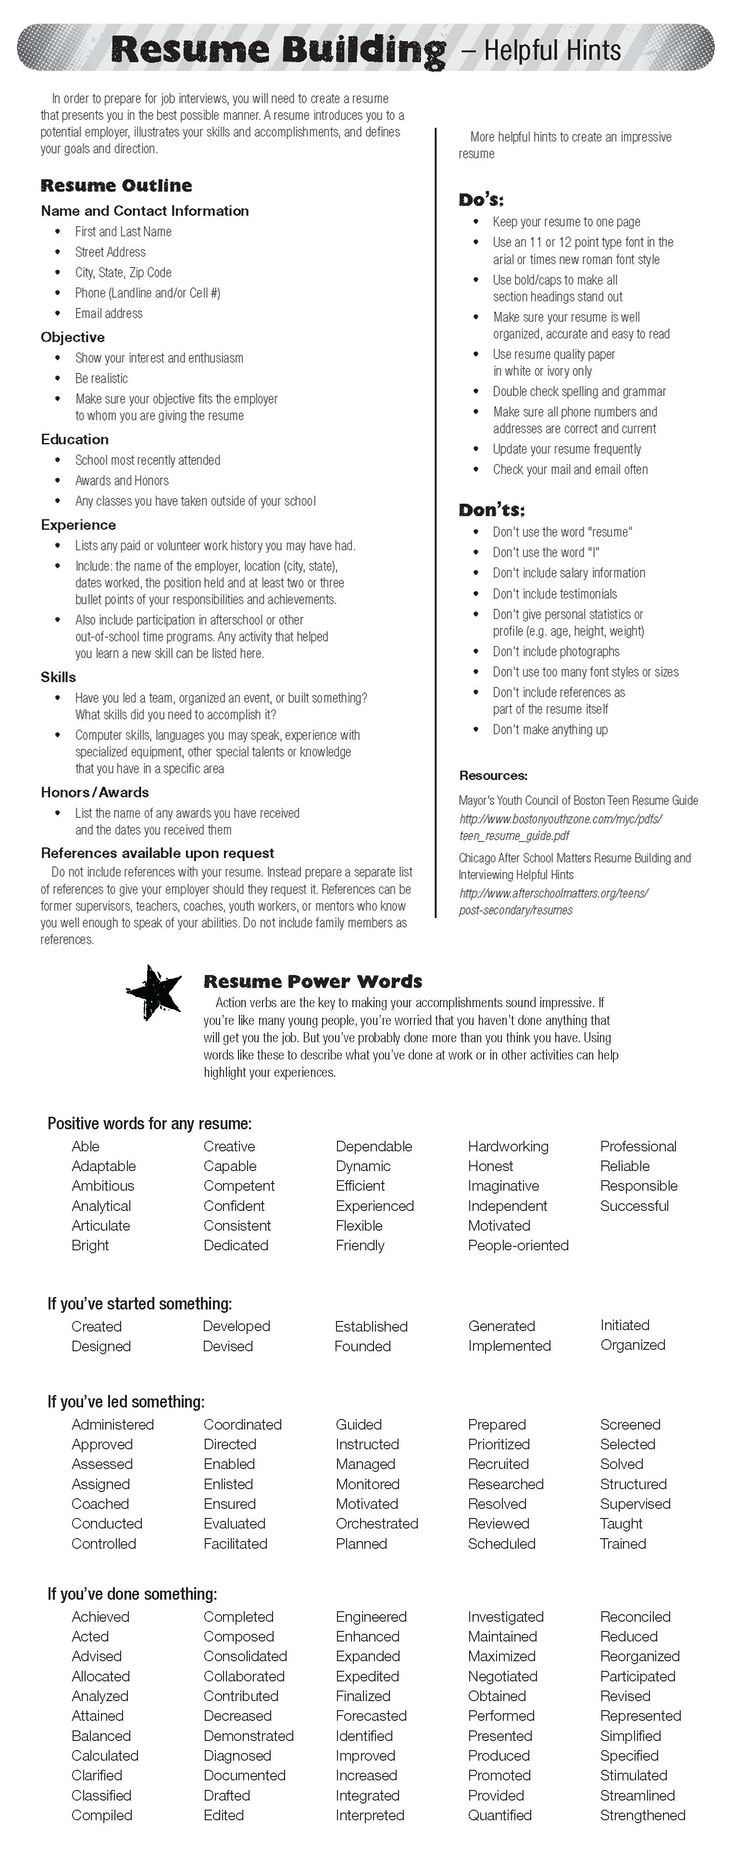 Picnictoimpeachus  Fascinating  Ideas About Resume On Pinterest  Cv Format Resume  With Likable Check Out Todays Resume Building Tips Resume Resumepowerwords With Cute Examples Of A Good Resume Also Resume Database In Addition Cover Letter Example For Resume And Free Template For Resume As Well As Resume Define Additionally Professional Resume Format From Pinterestcom With Picnictoimpeachus  Likable  Ideas About Resume On Pinterest  Cv Format Resume  With Cute Check Out Todays Resume Building Tips Resume Resumepowerwords And Fascinating Examples Of A Good Resume Also Resume Database In Addition Cover Letter Example For Resume From Pinterestcom